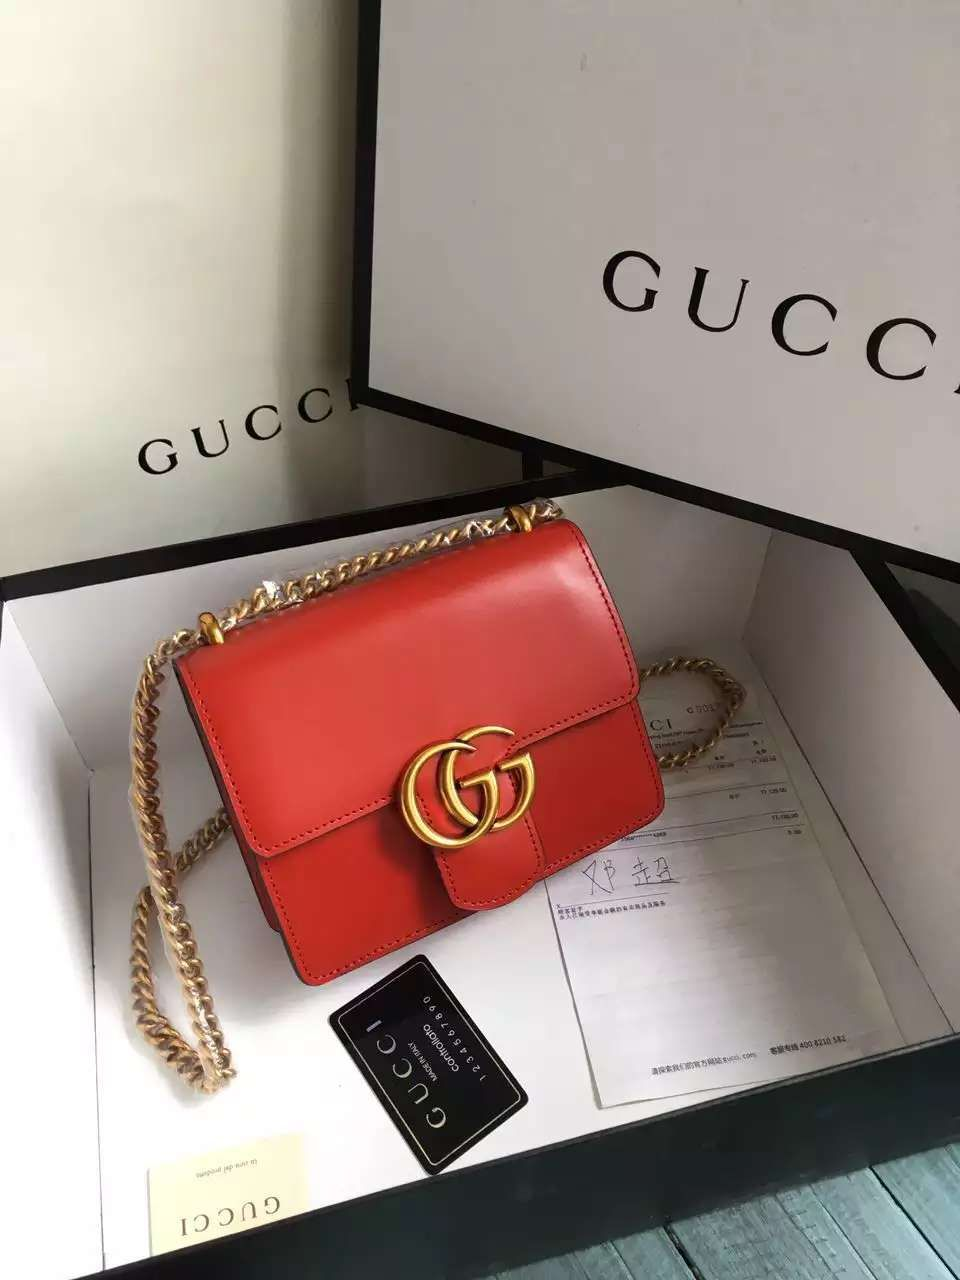 Gucci Bag Id 49465 For A Yybags Backpack On Wheels Handbags Loja Online In Las Vegas Woman S